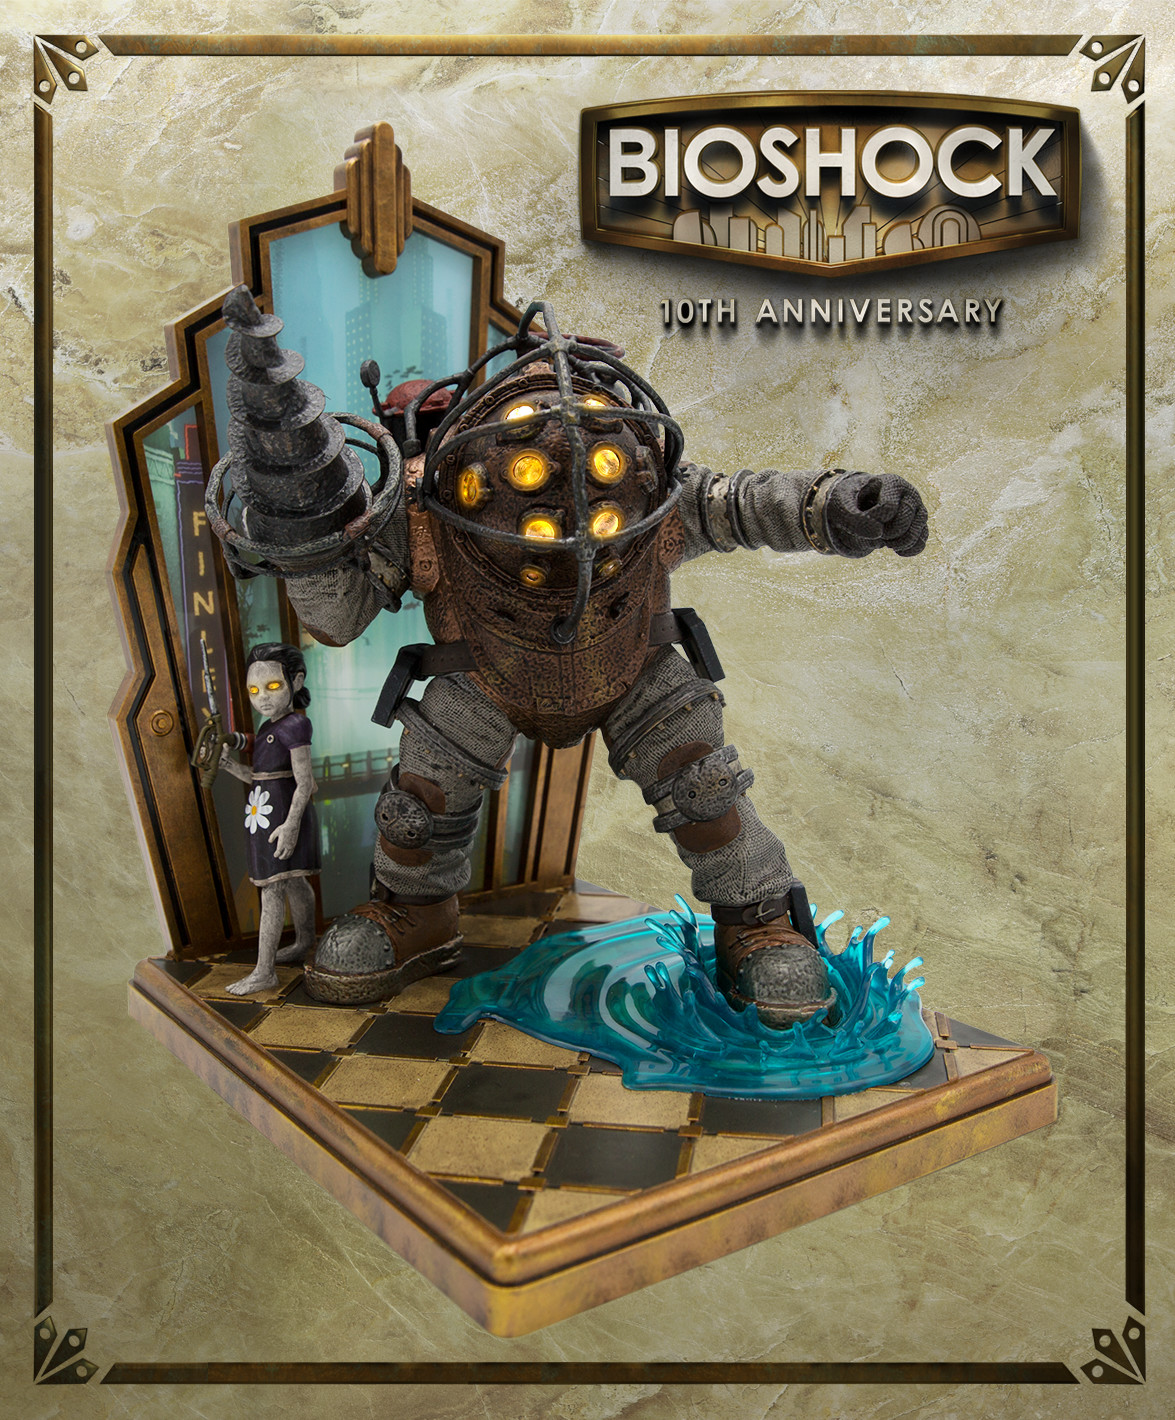 Bioshock 10th Anniversary Collector's Edition Announced By 2K